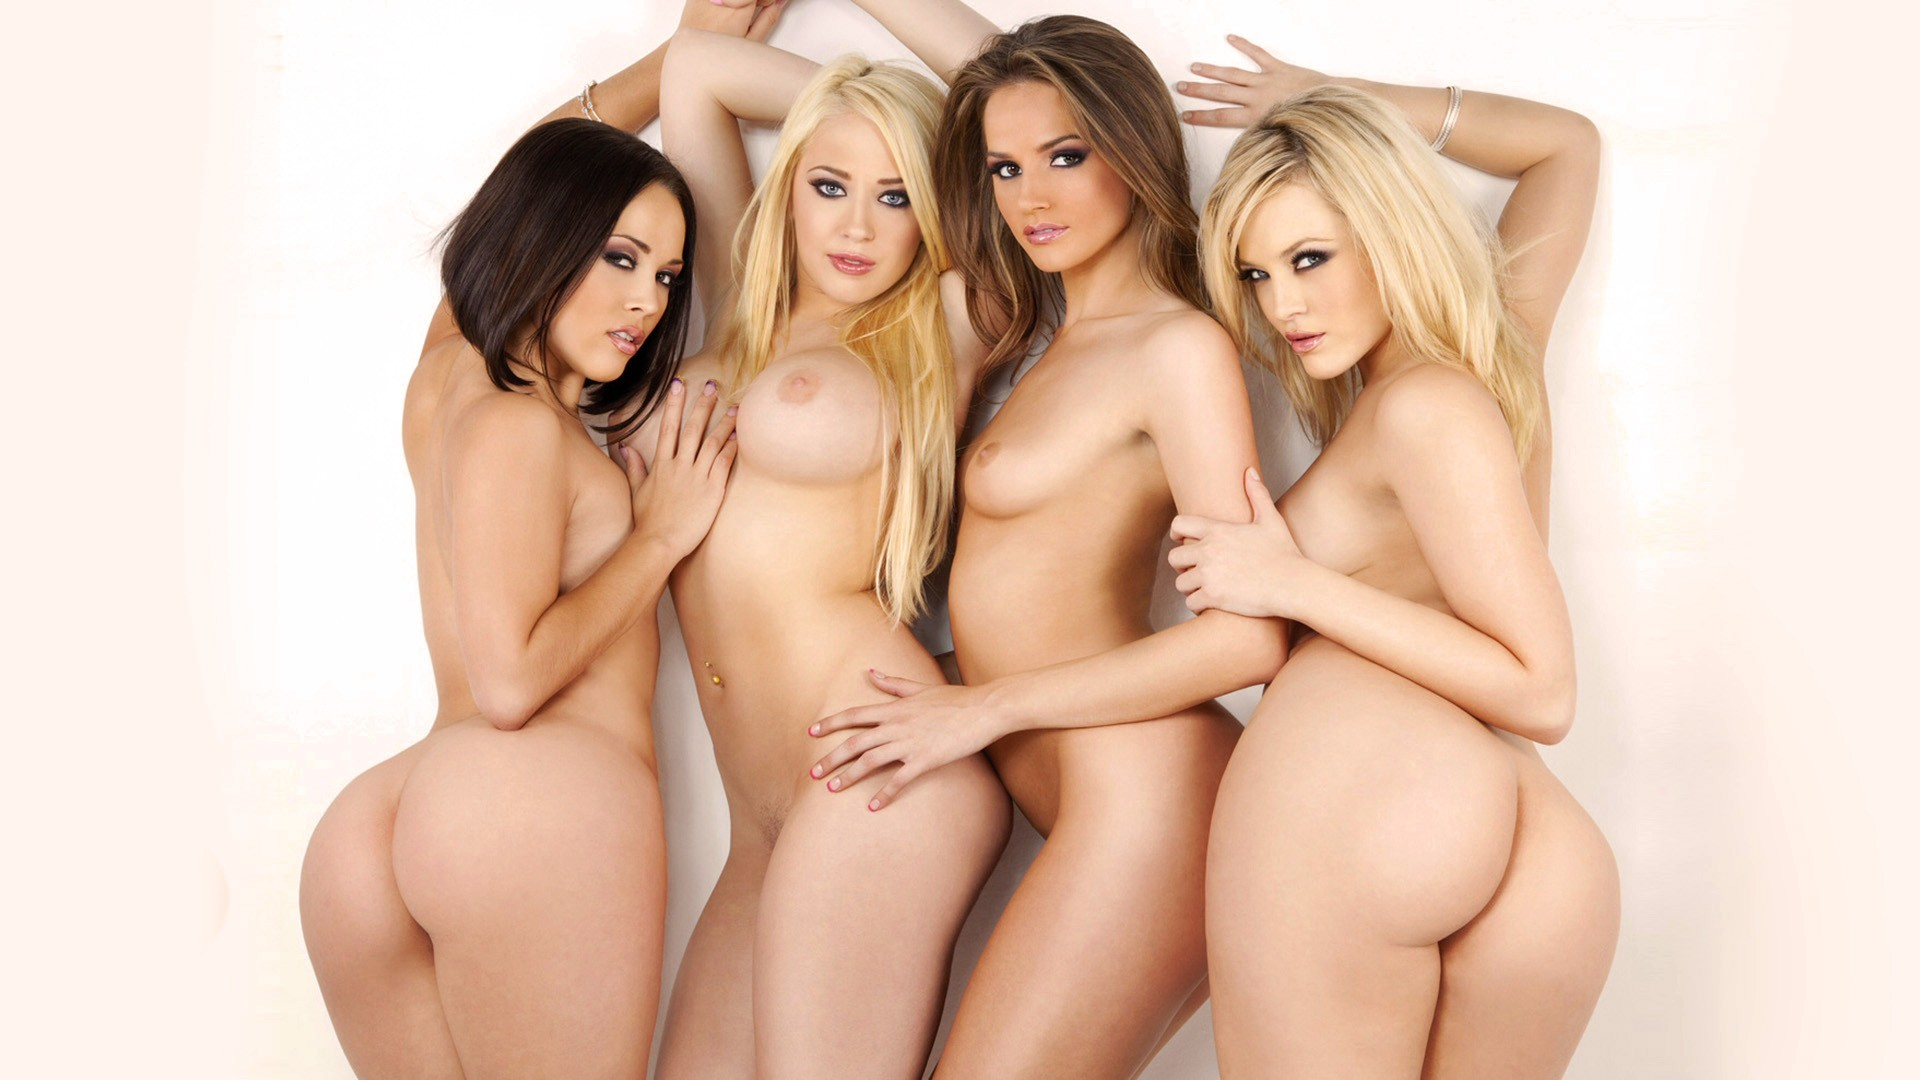 naked-girls-in-group-mix-vol3-74